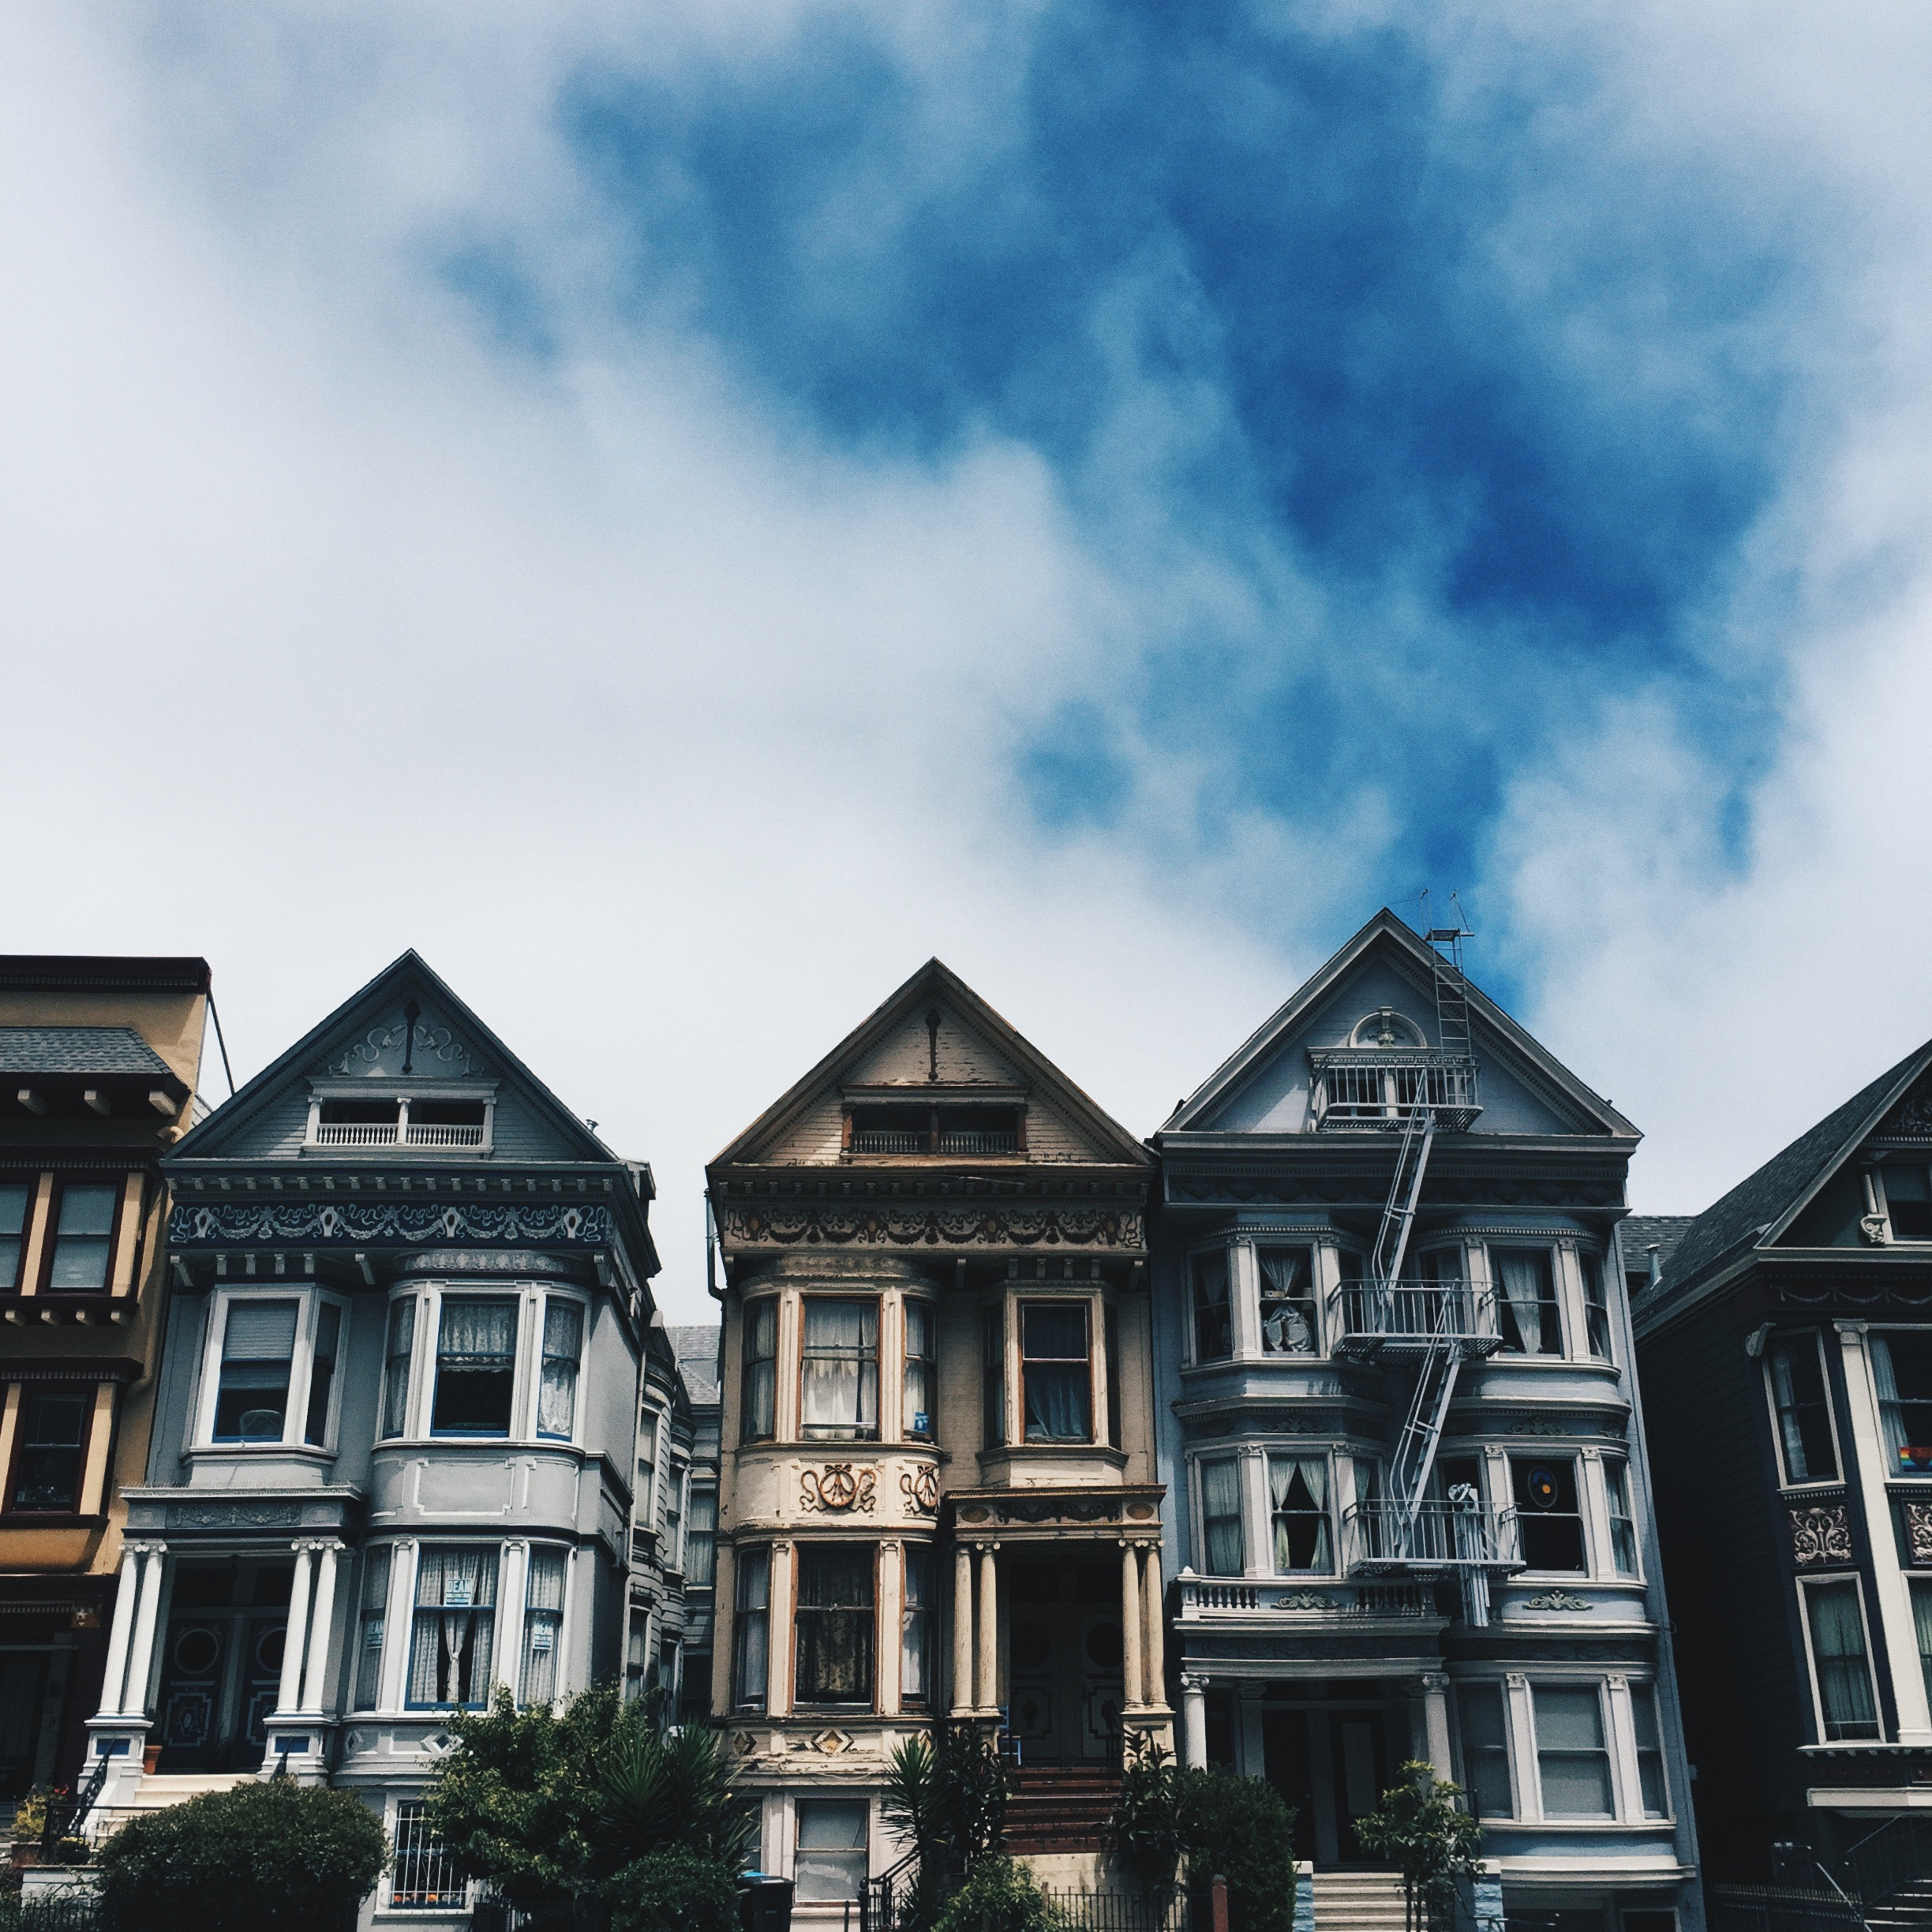 I love all the architecture around the city. This was taken while I was on a run around the panhandle section of Golden Gate Park.